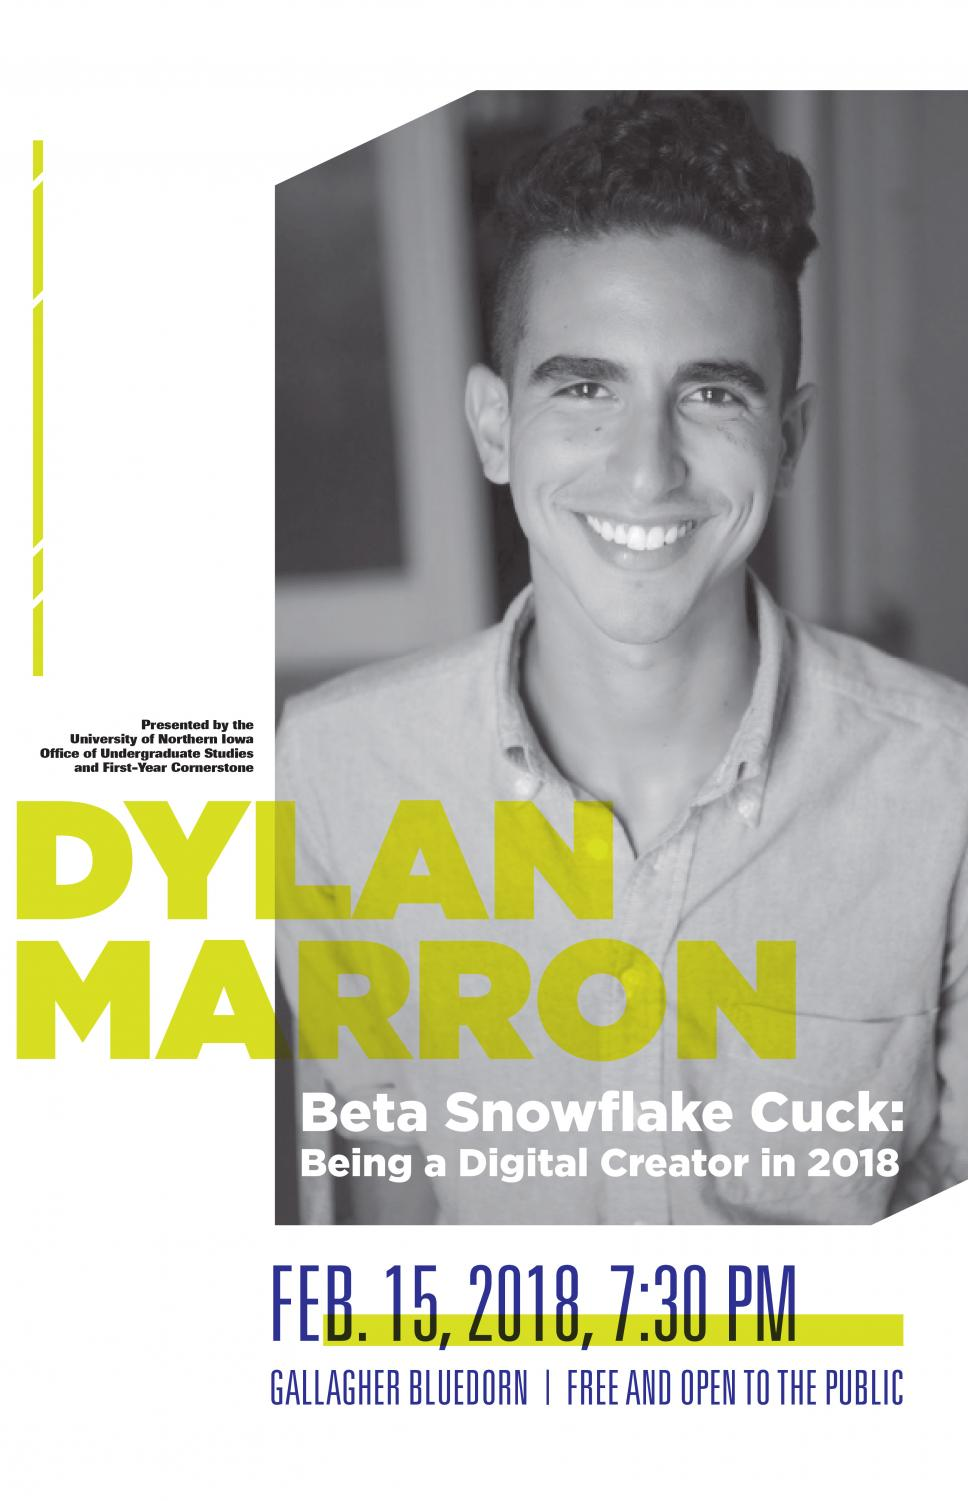 Dylan Marron, a videographer and writer, will be speaking at UNI on Feb. 15 on being a creator in 2018.